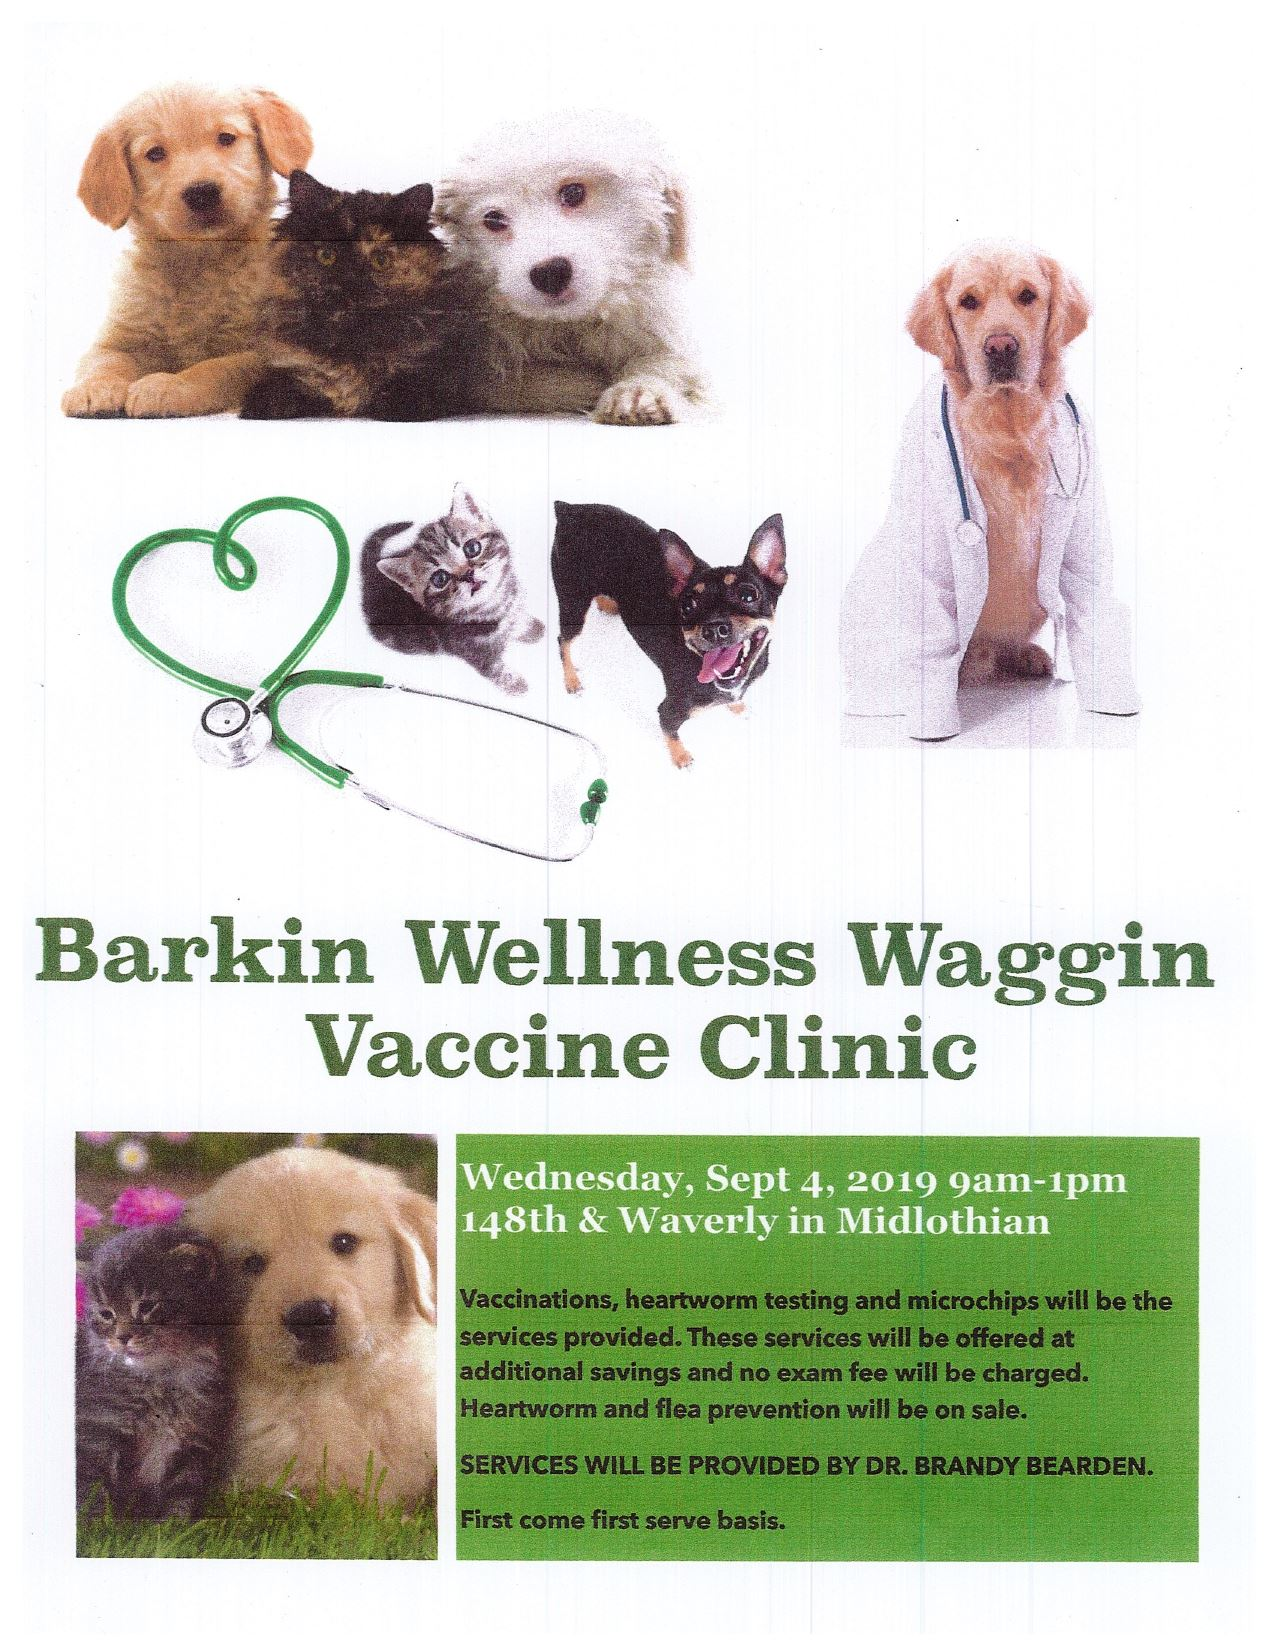 Barkin Wellness Waggin Vaccine Clinic Flyer